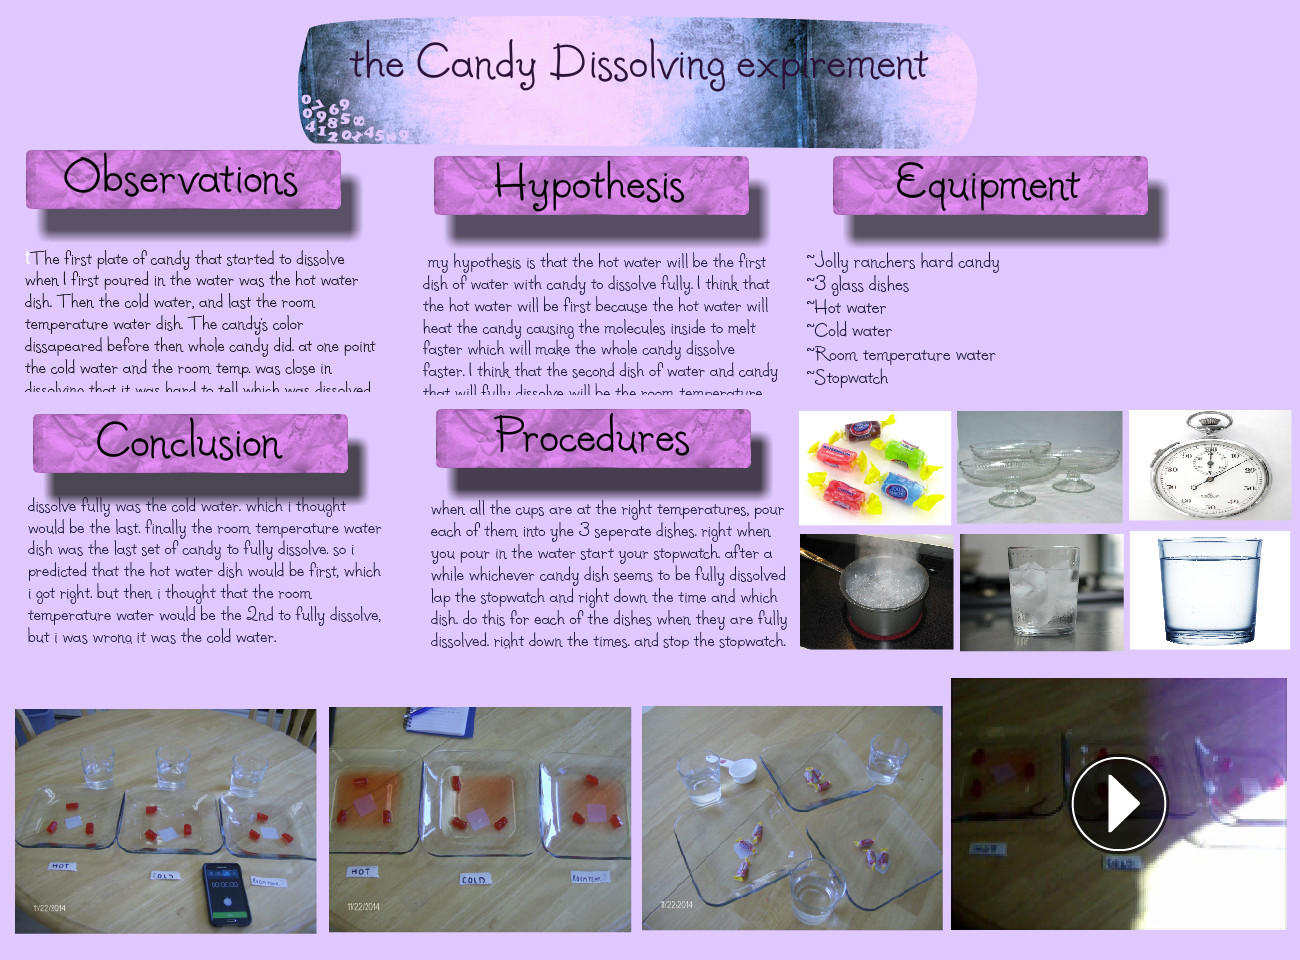 The Candy Dissolving Experiment